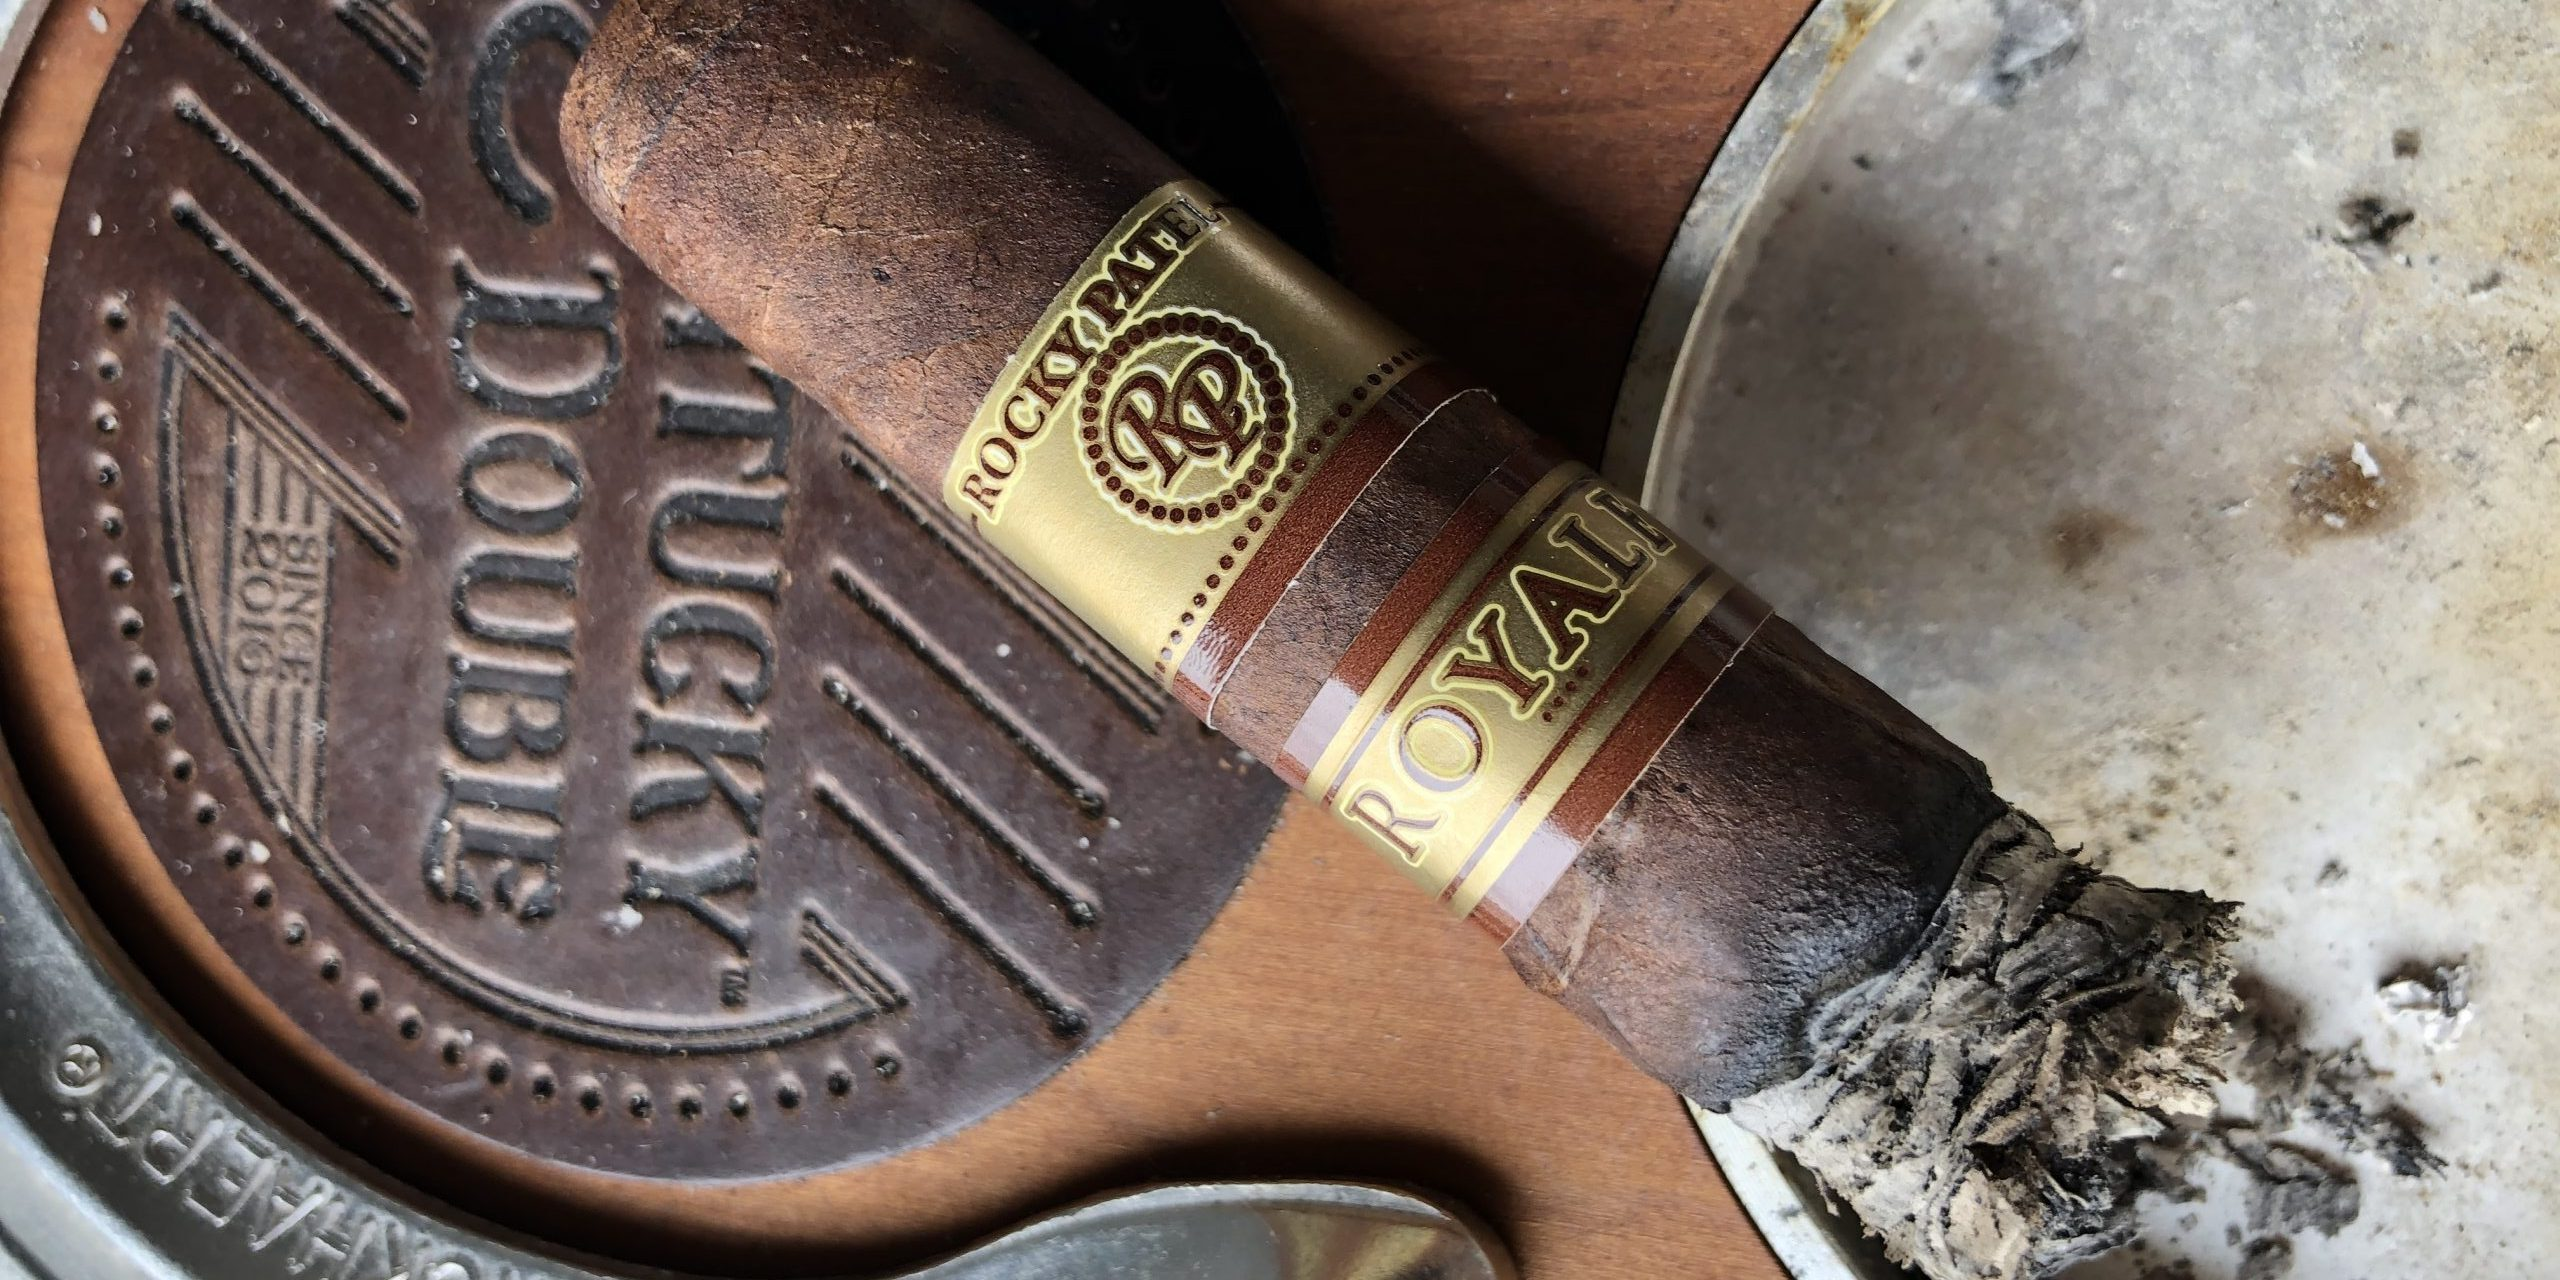 You are currently viewing Rocky Patel Royale Robusto Cigar Review